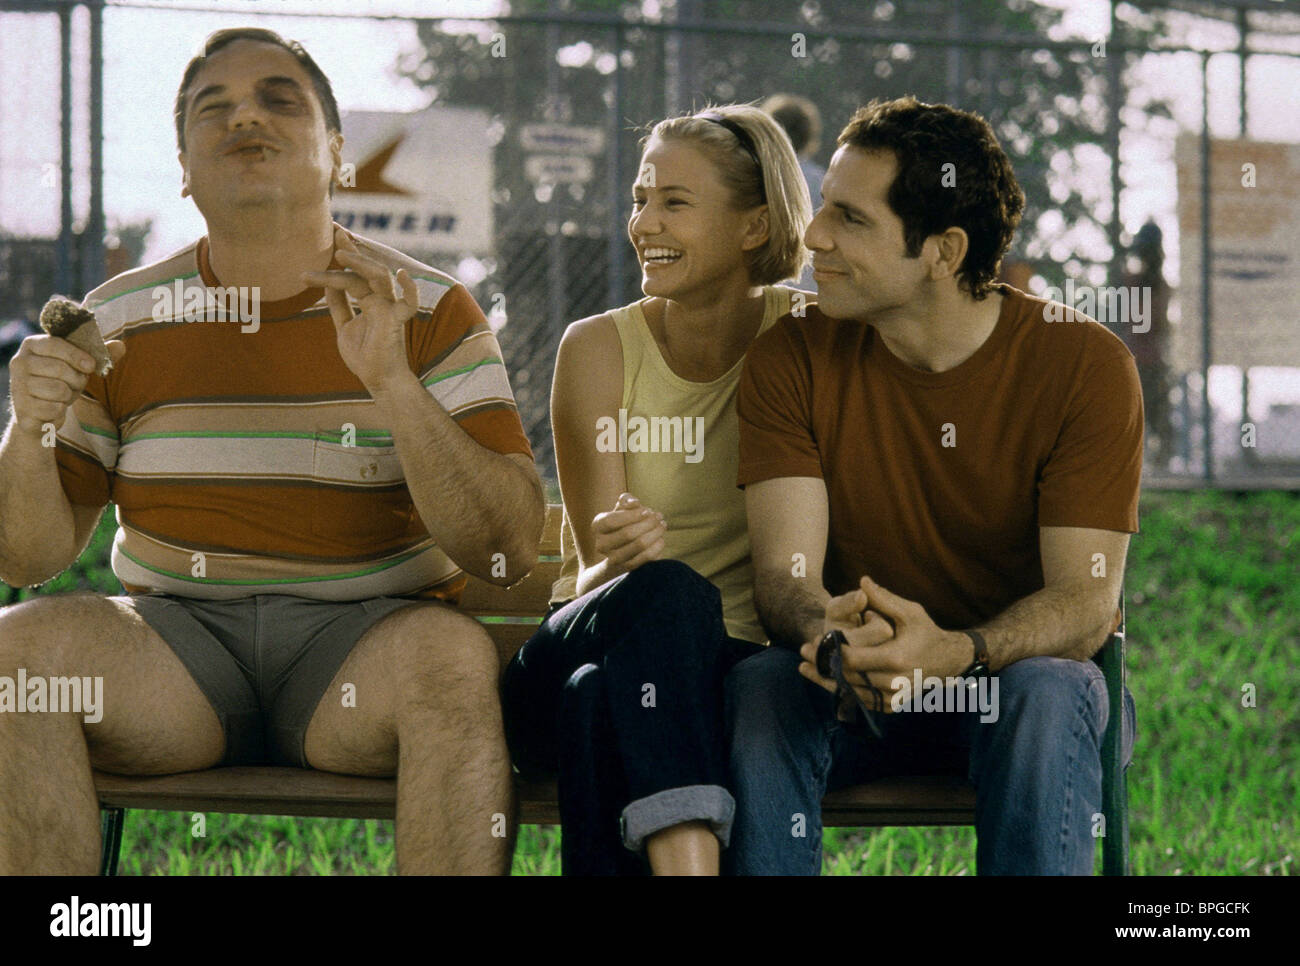 W. EARL BROWN, CAMERON DIAZ, BEN STILLER, THERE'S SOMETHING ABOUT MARY, 1998 - Stock Image